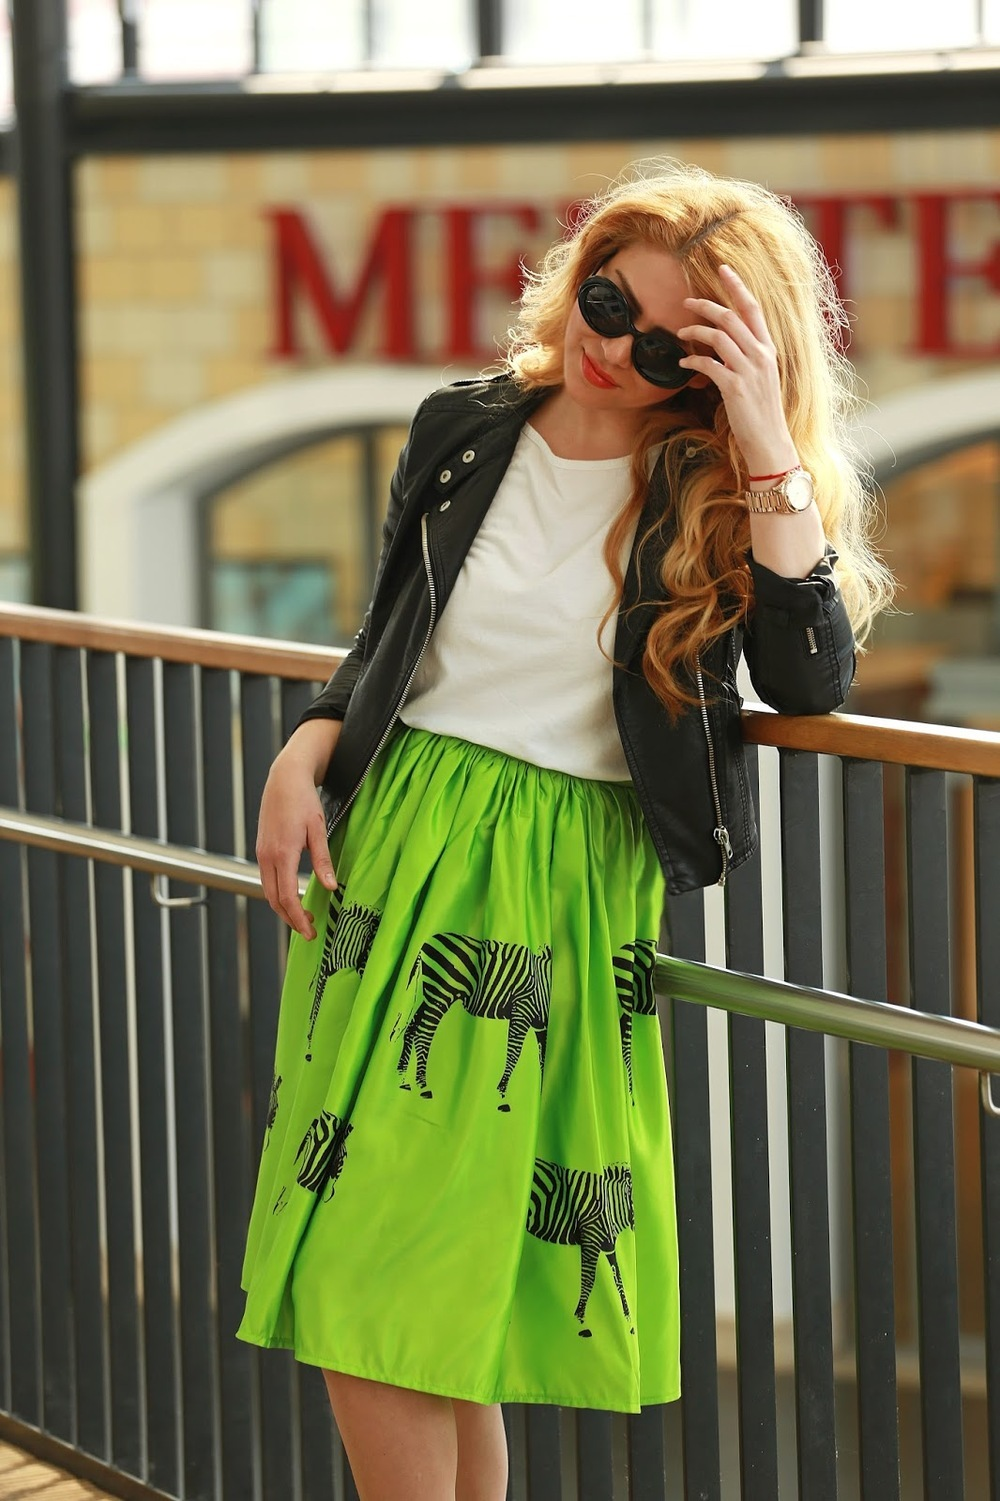 Green zebra printing skirt